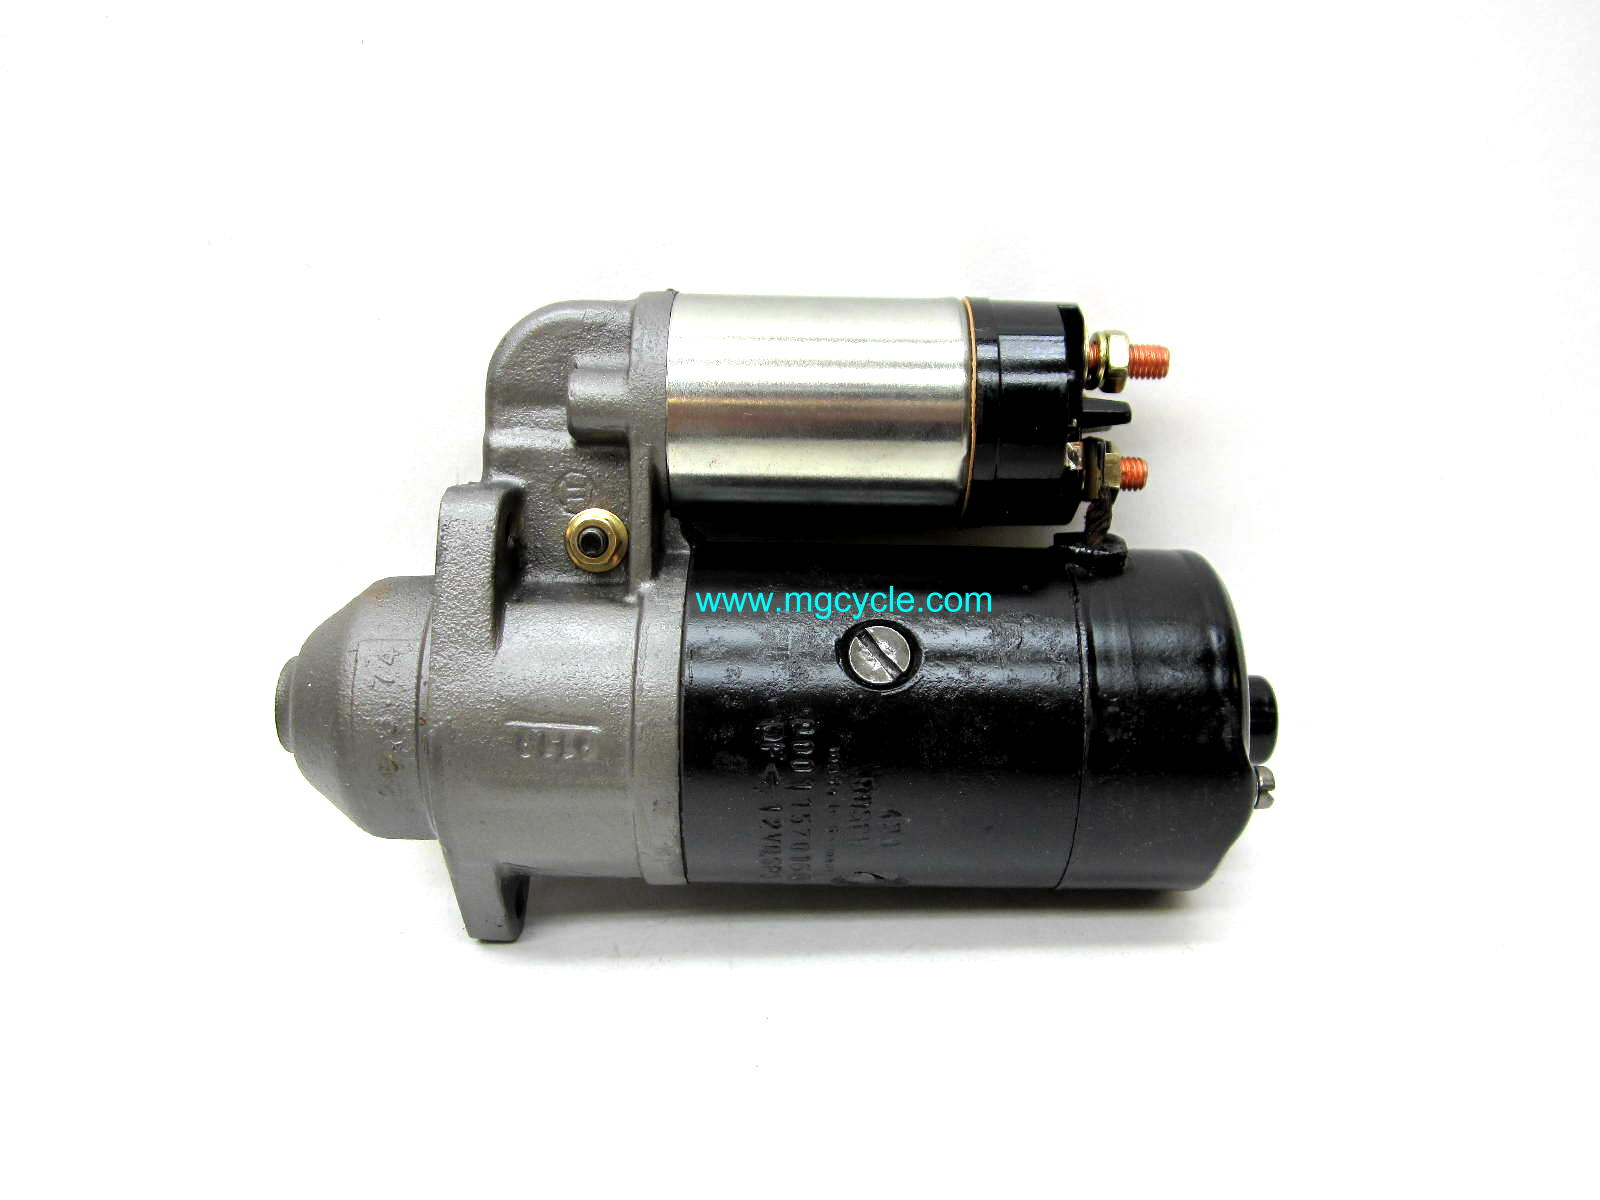 Bosch starter, re built Guzzis starting w/V7 Sport core exchange